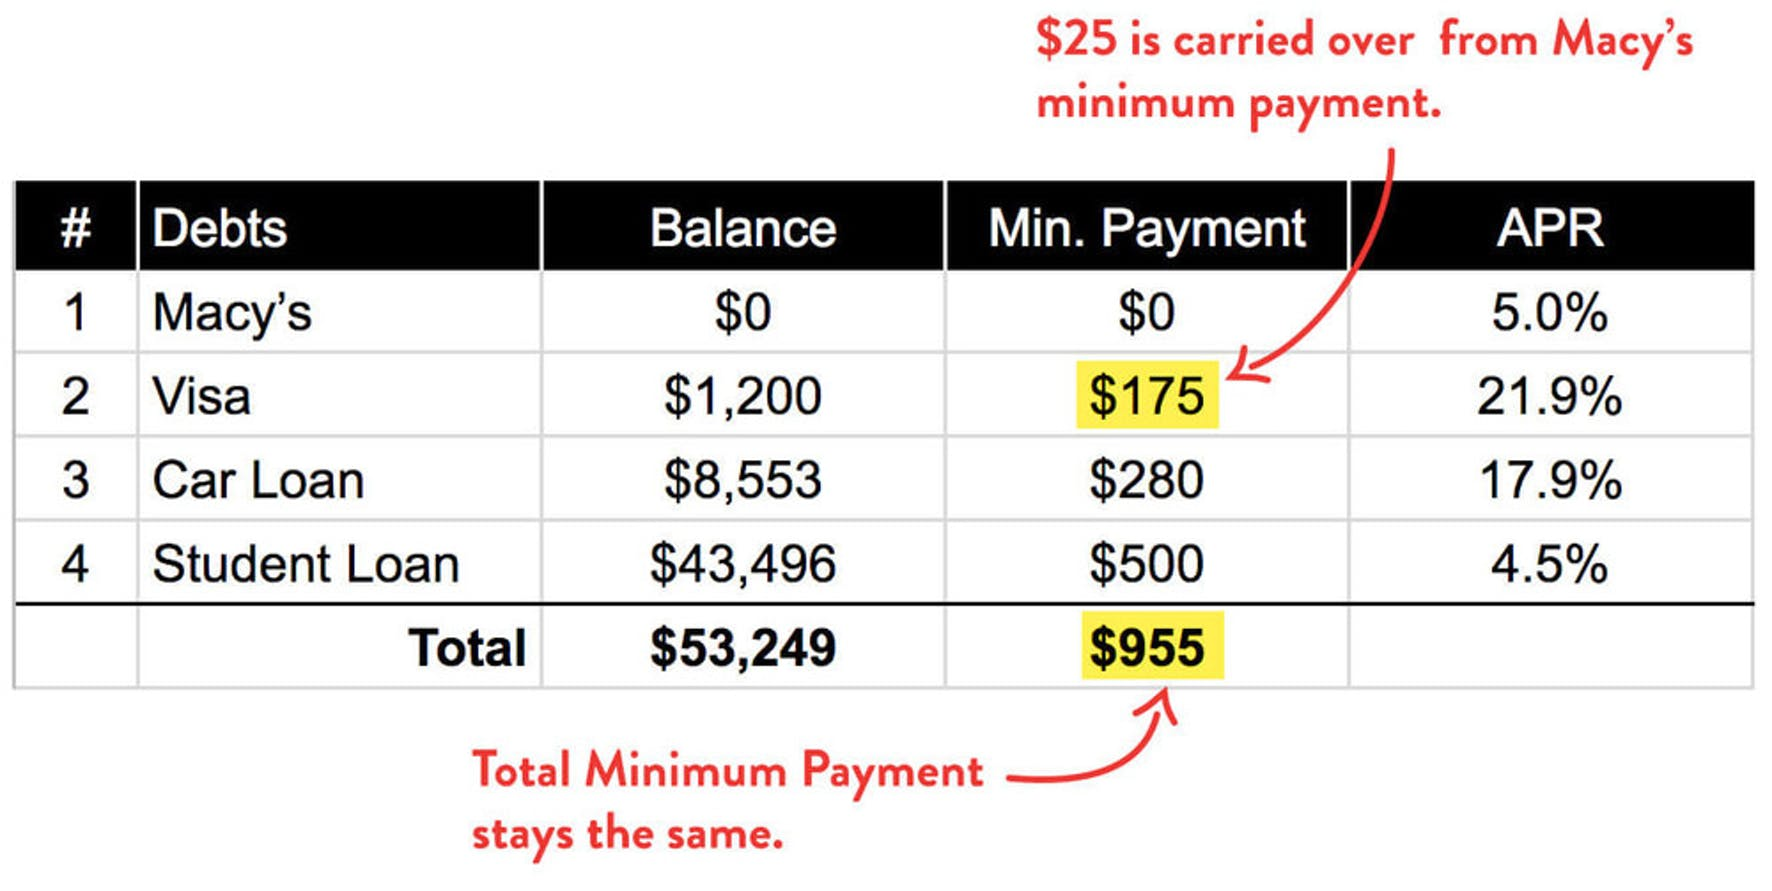 Debt Snowball Minimum Payments Carry Over